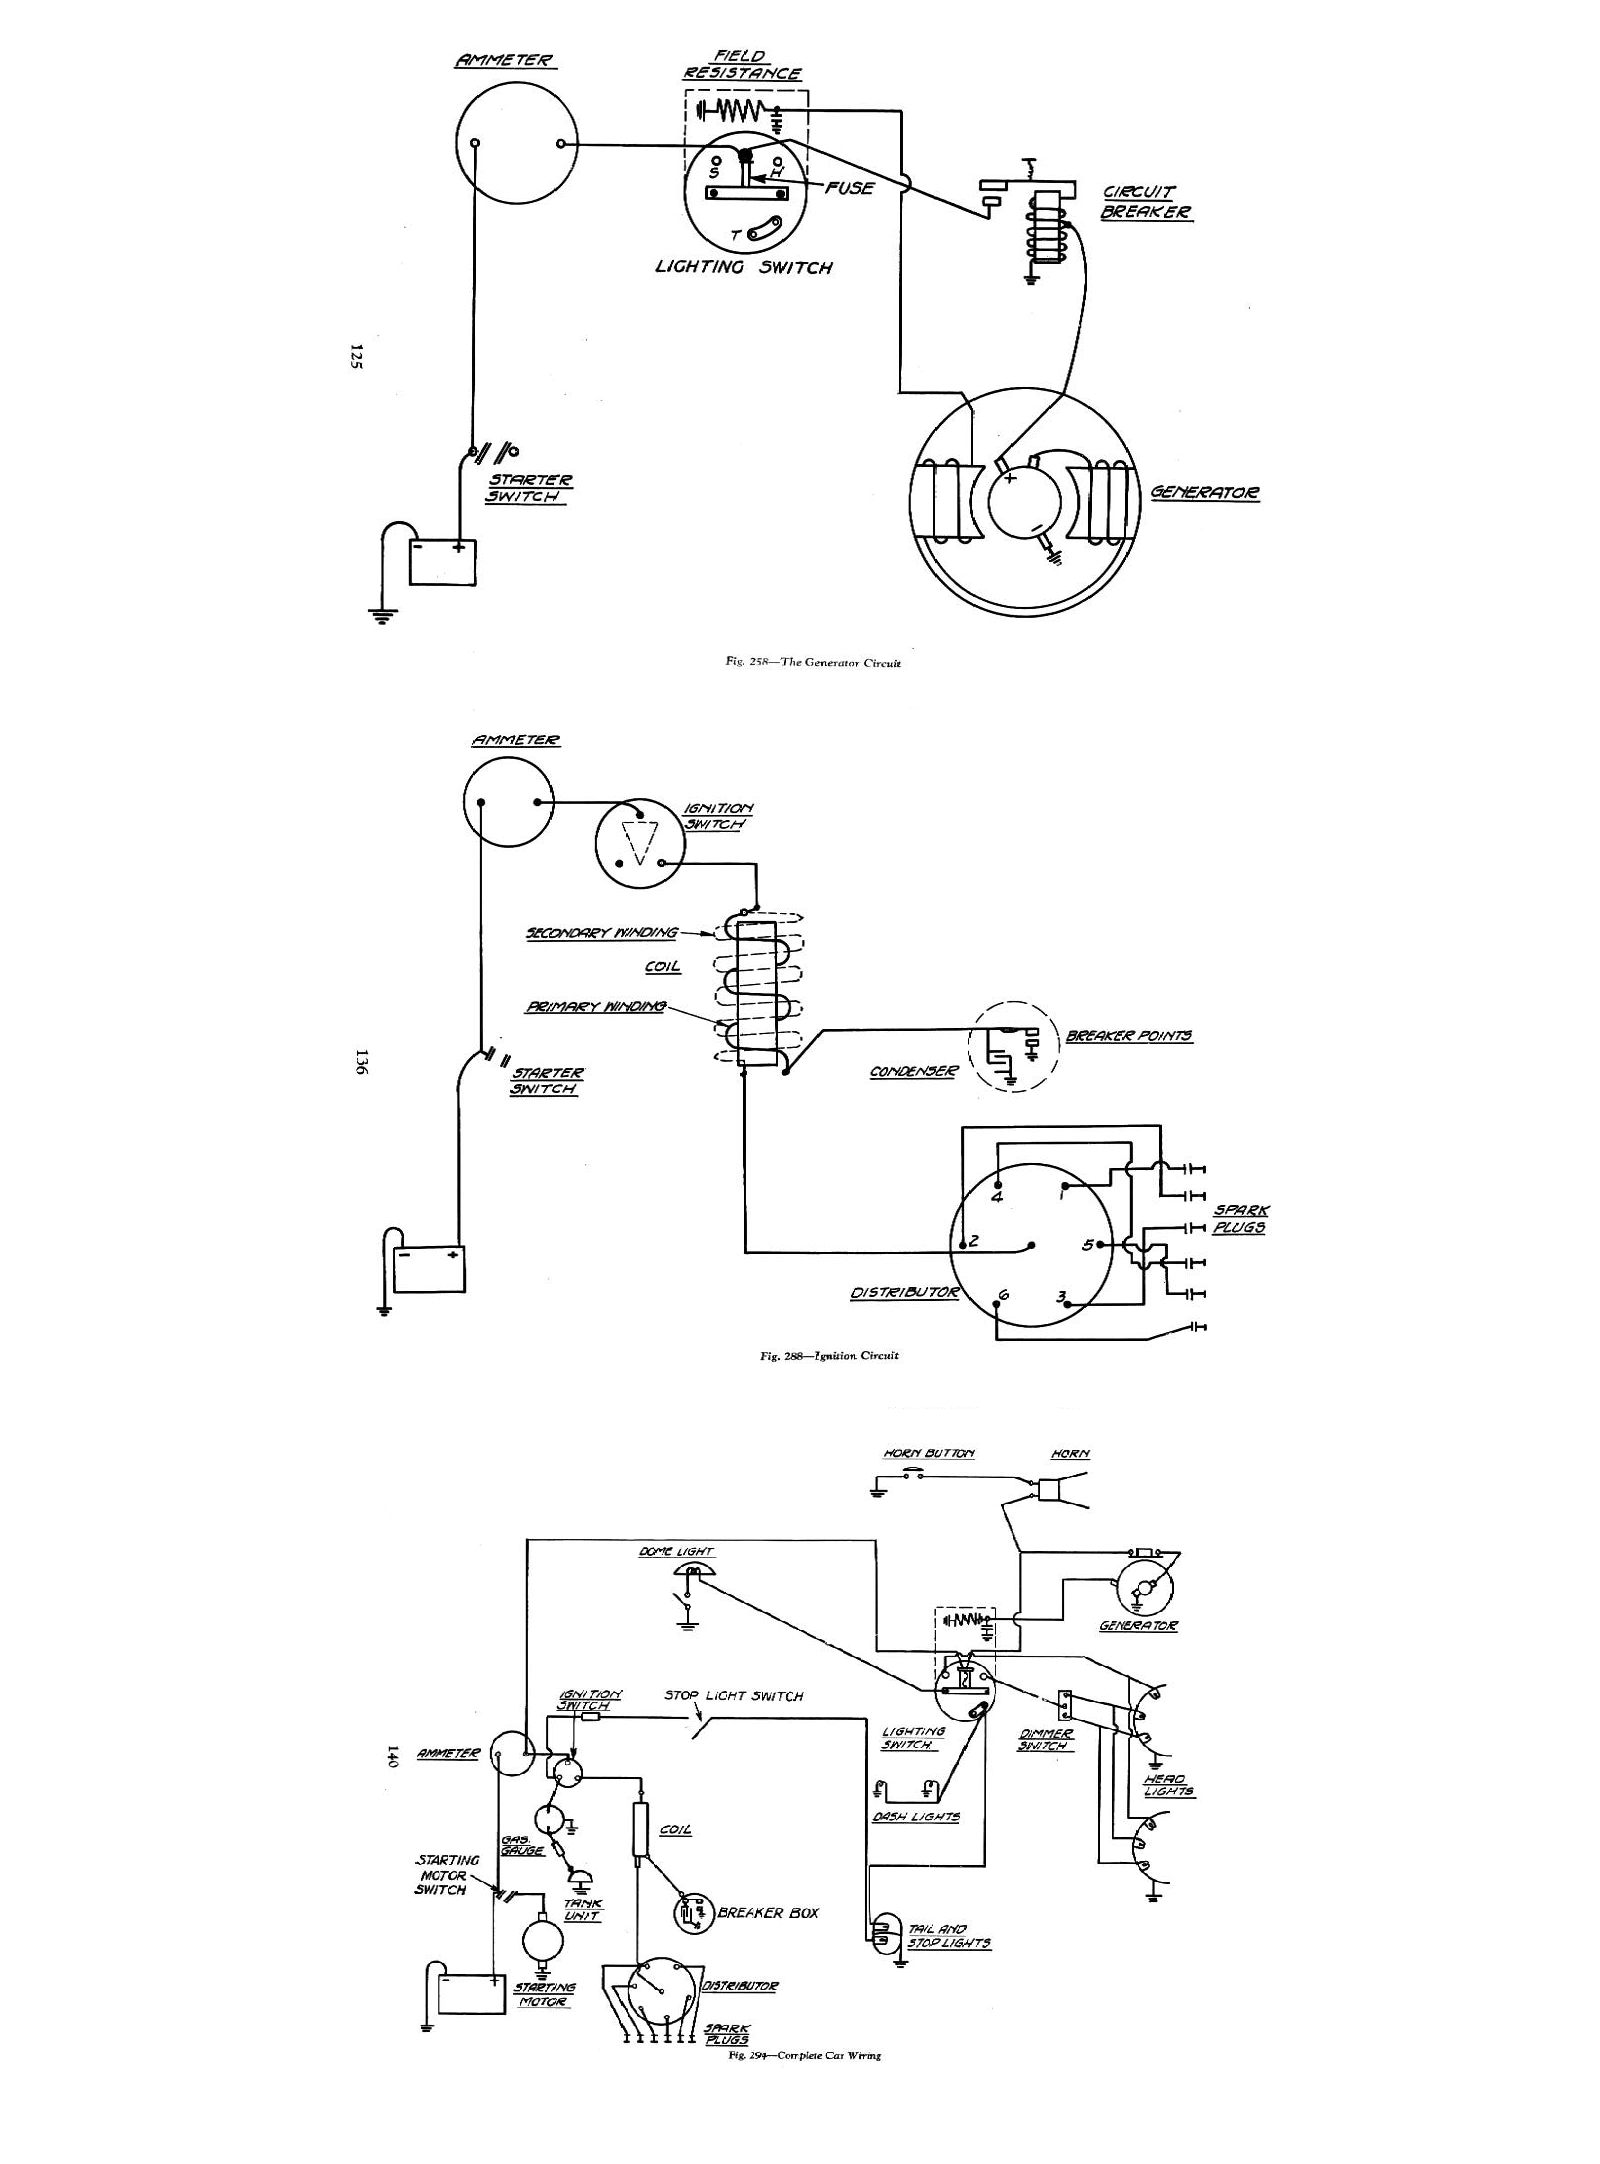 1955 Buick Generator Wiring - Wiring Diagram Detailed on ford aerostar wiring diagram, ford f-250 super duty wiring diagram, 1937 ford wiring diagram, ford 500 wiring diagram, ford f500 wiring diagram, ford fairlane rear suspension, 1963 ford wiring diagram, 1964 ford truck wiring diagram, ford fairlane fuel tank, ford truck wiring schematics, ford granada wiring diagram, ford econoline van wiring diagram, ford fairlane exhaust, ford fairlane radio, ford electrical wiring diagrams, ford fairlane specifications, ford fairlane body, ford thunderbird wiring diagram, 1965 ford truck wiring diagram, ford flex wiring diagram,